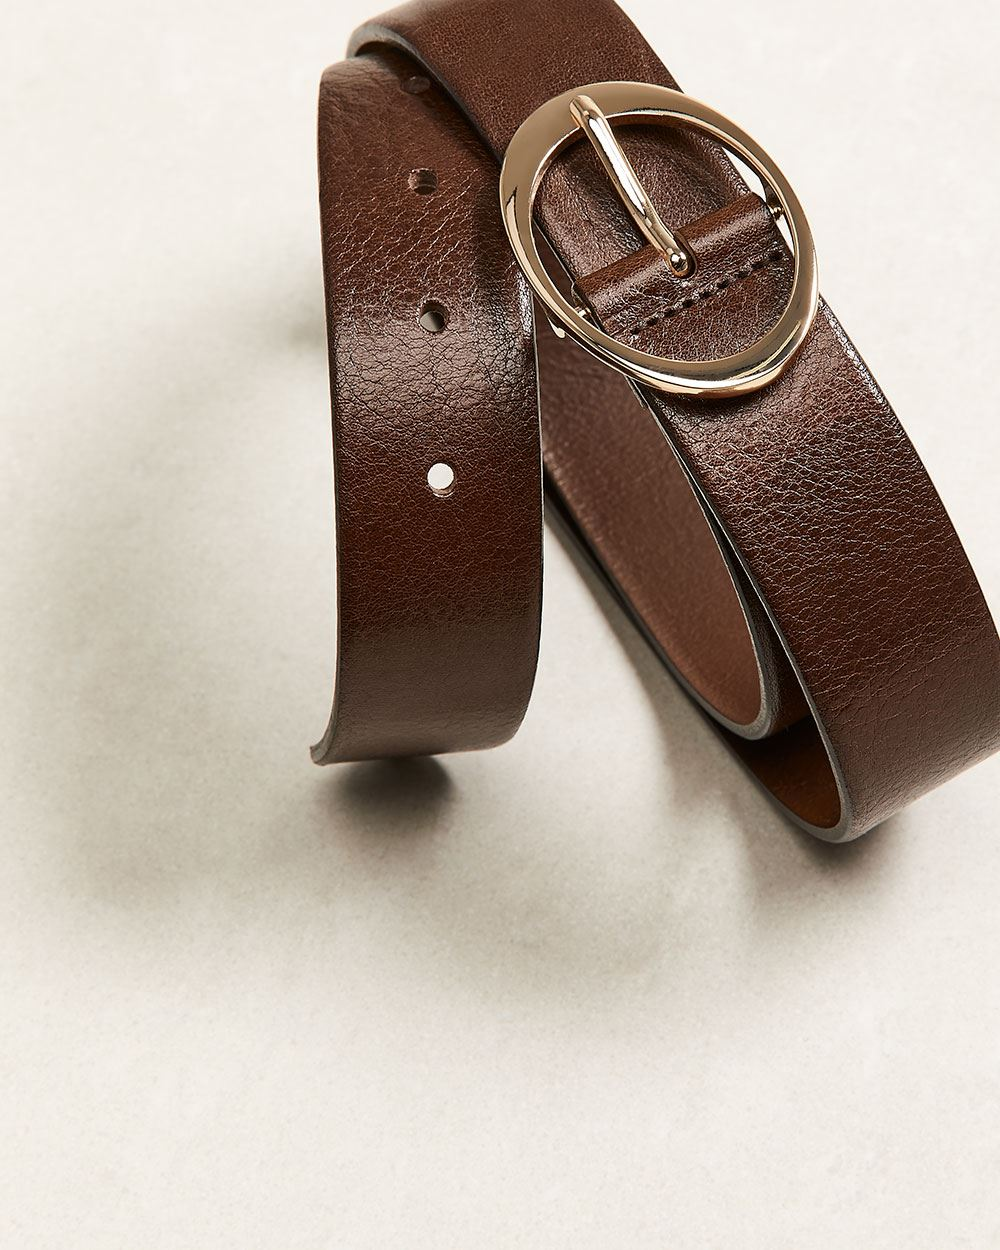 Leather belt with oval metal buckle